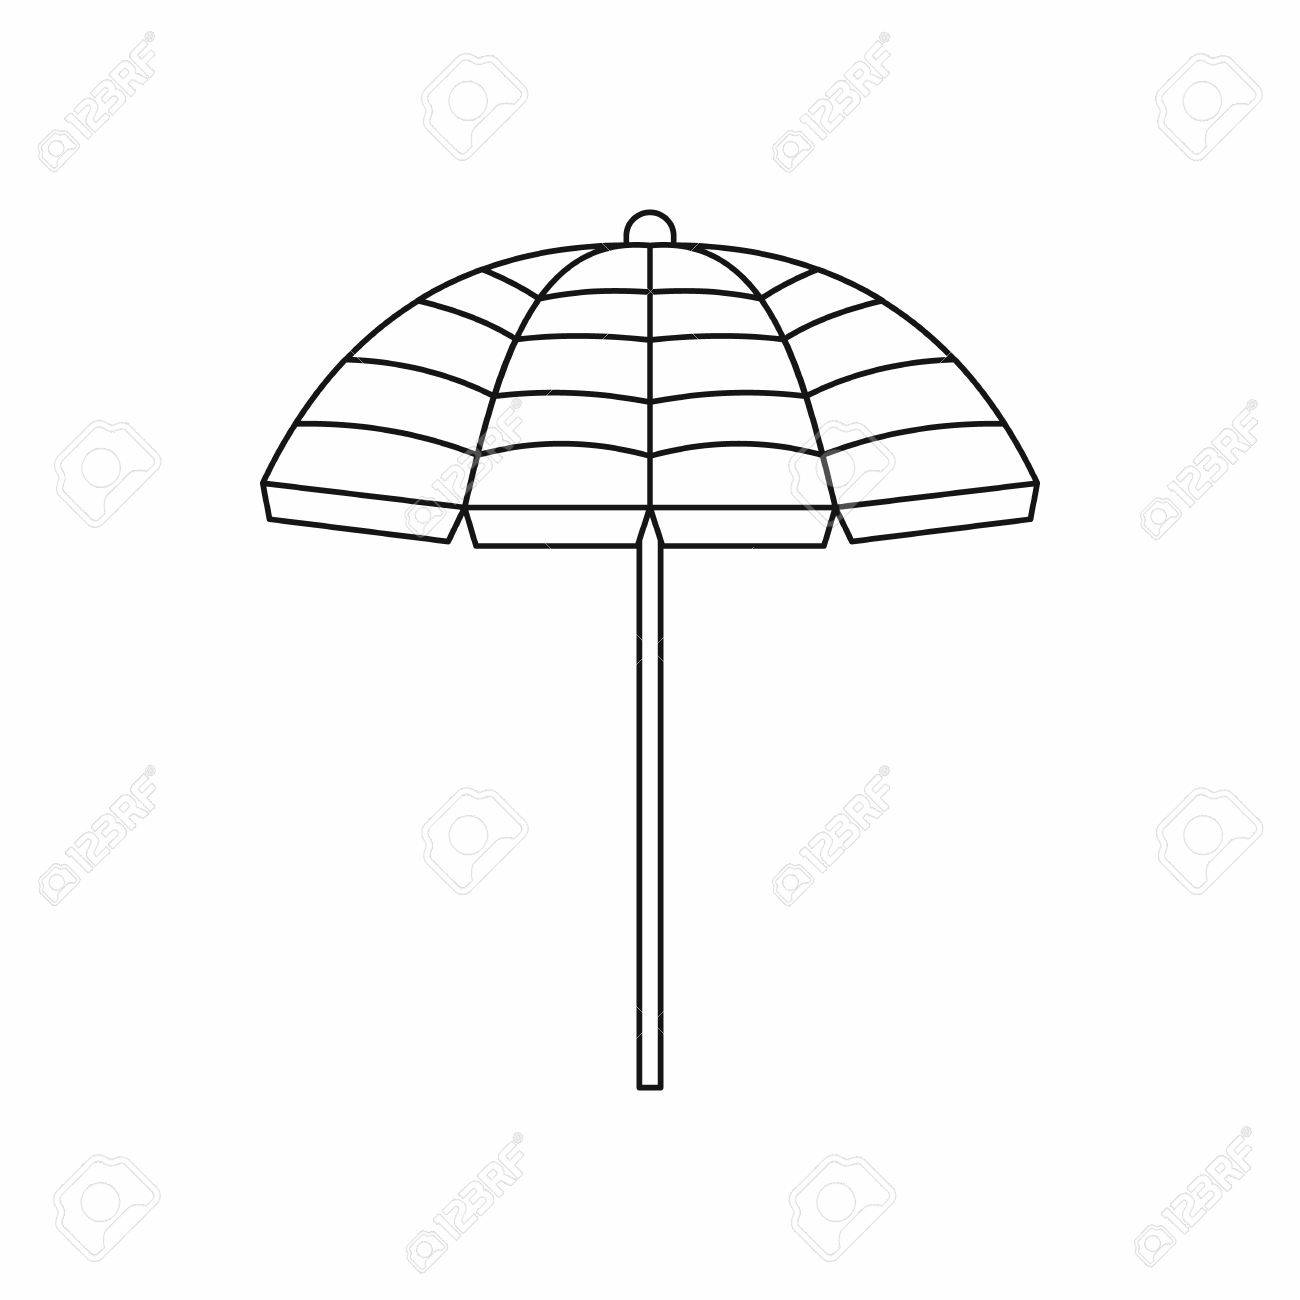 ca669ede0d Beach umbrella icon in outline style isolated on white background